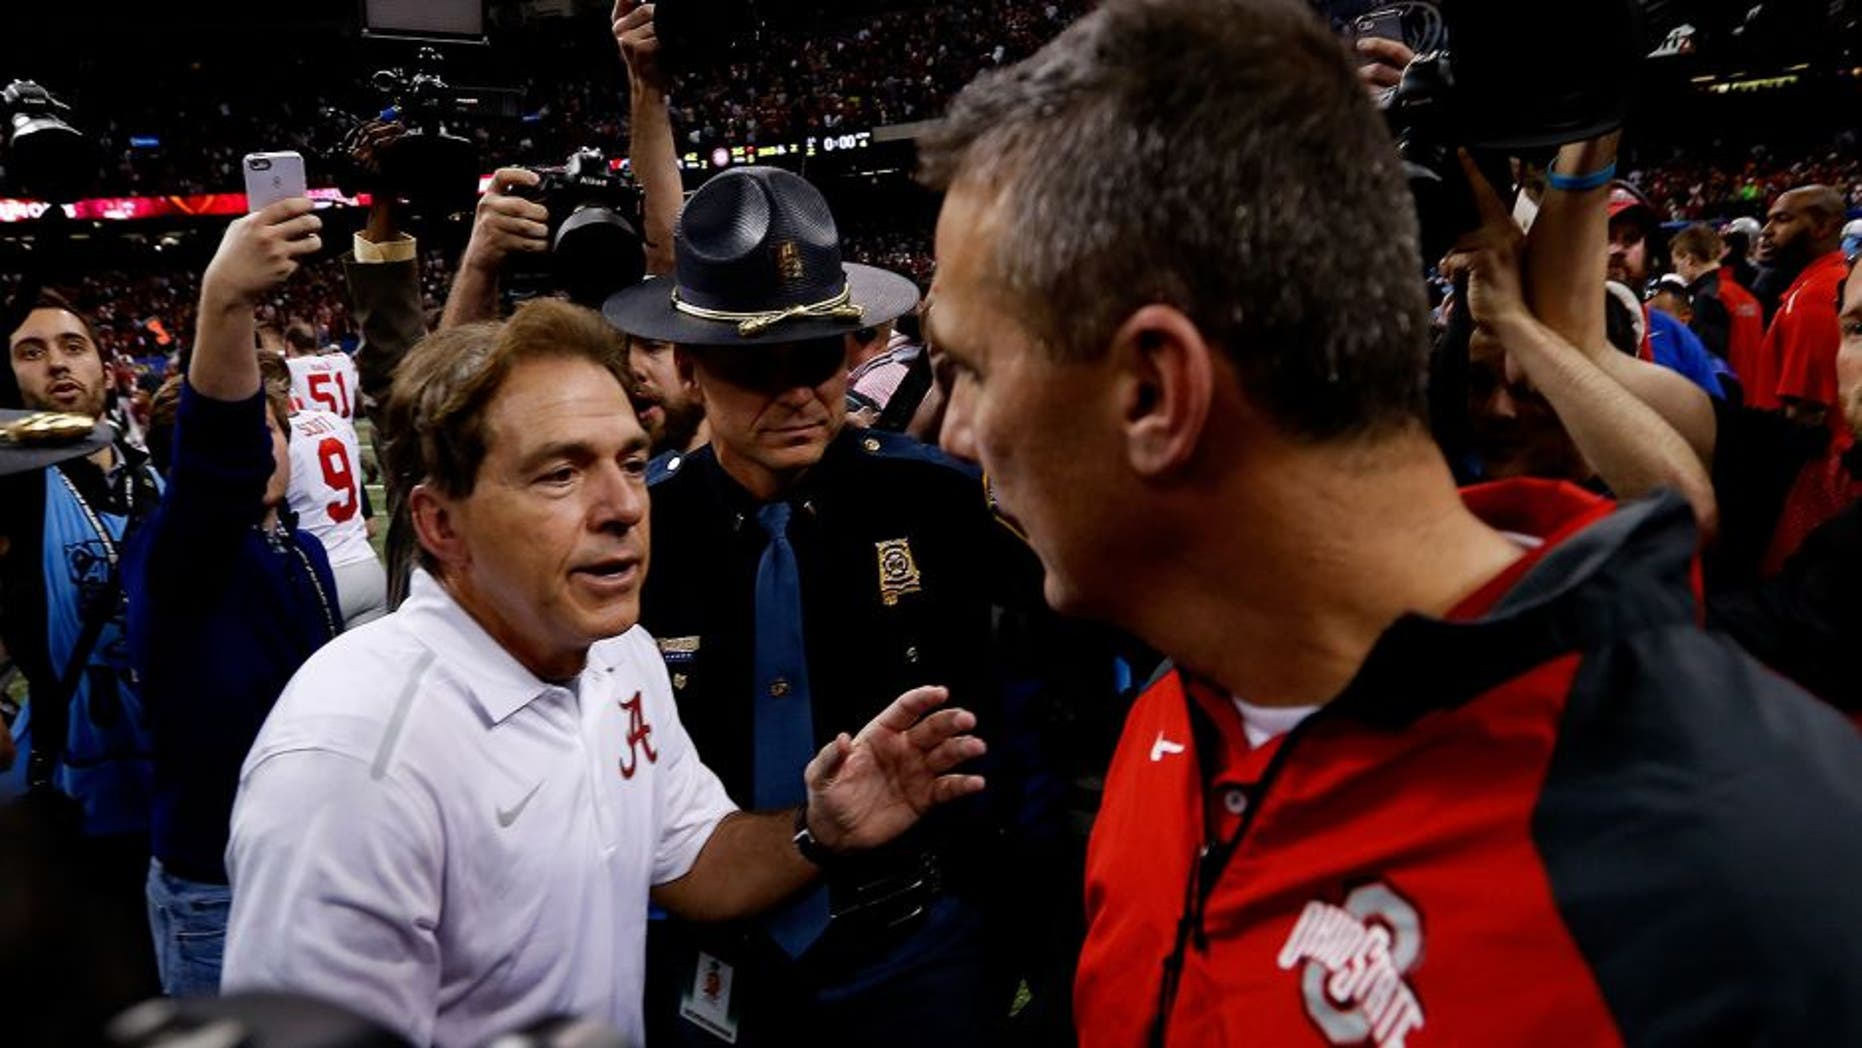 NEW ORLEANS, LA - JANUARY 01: Head coach Urban Meyer (R) of the Ohio State Buckeyes shakes hands with head coach Nick Saban (L) of the Alabama Crimson Tide after the All State Sugar Bowl at the Mercedes-Benz Superdome on January 1, 2015 in New Orleans, Louisiana. The Ohio State Buckeyes defeated the Alabama Crimson Tide 42 to 35. (Photo by Sean Gardner/Getty Images)